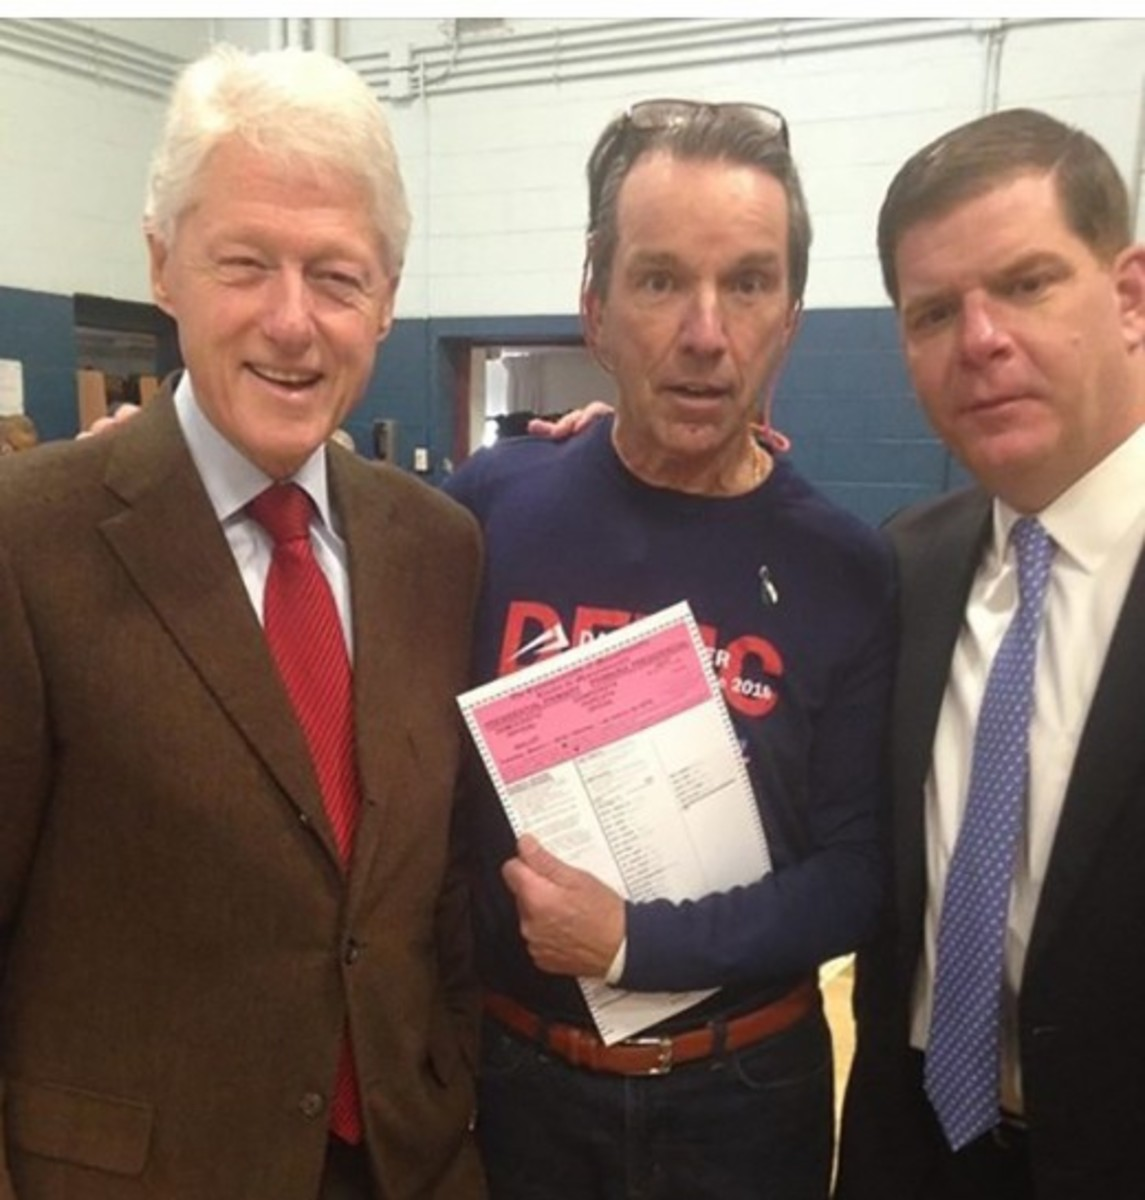 Clinton Campaigning illegally inside Massachusetts polling station during 2016 Democratic primary.